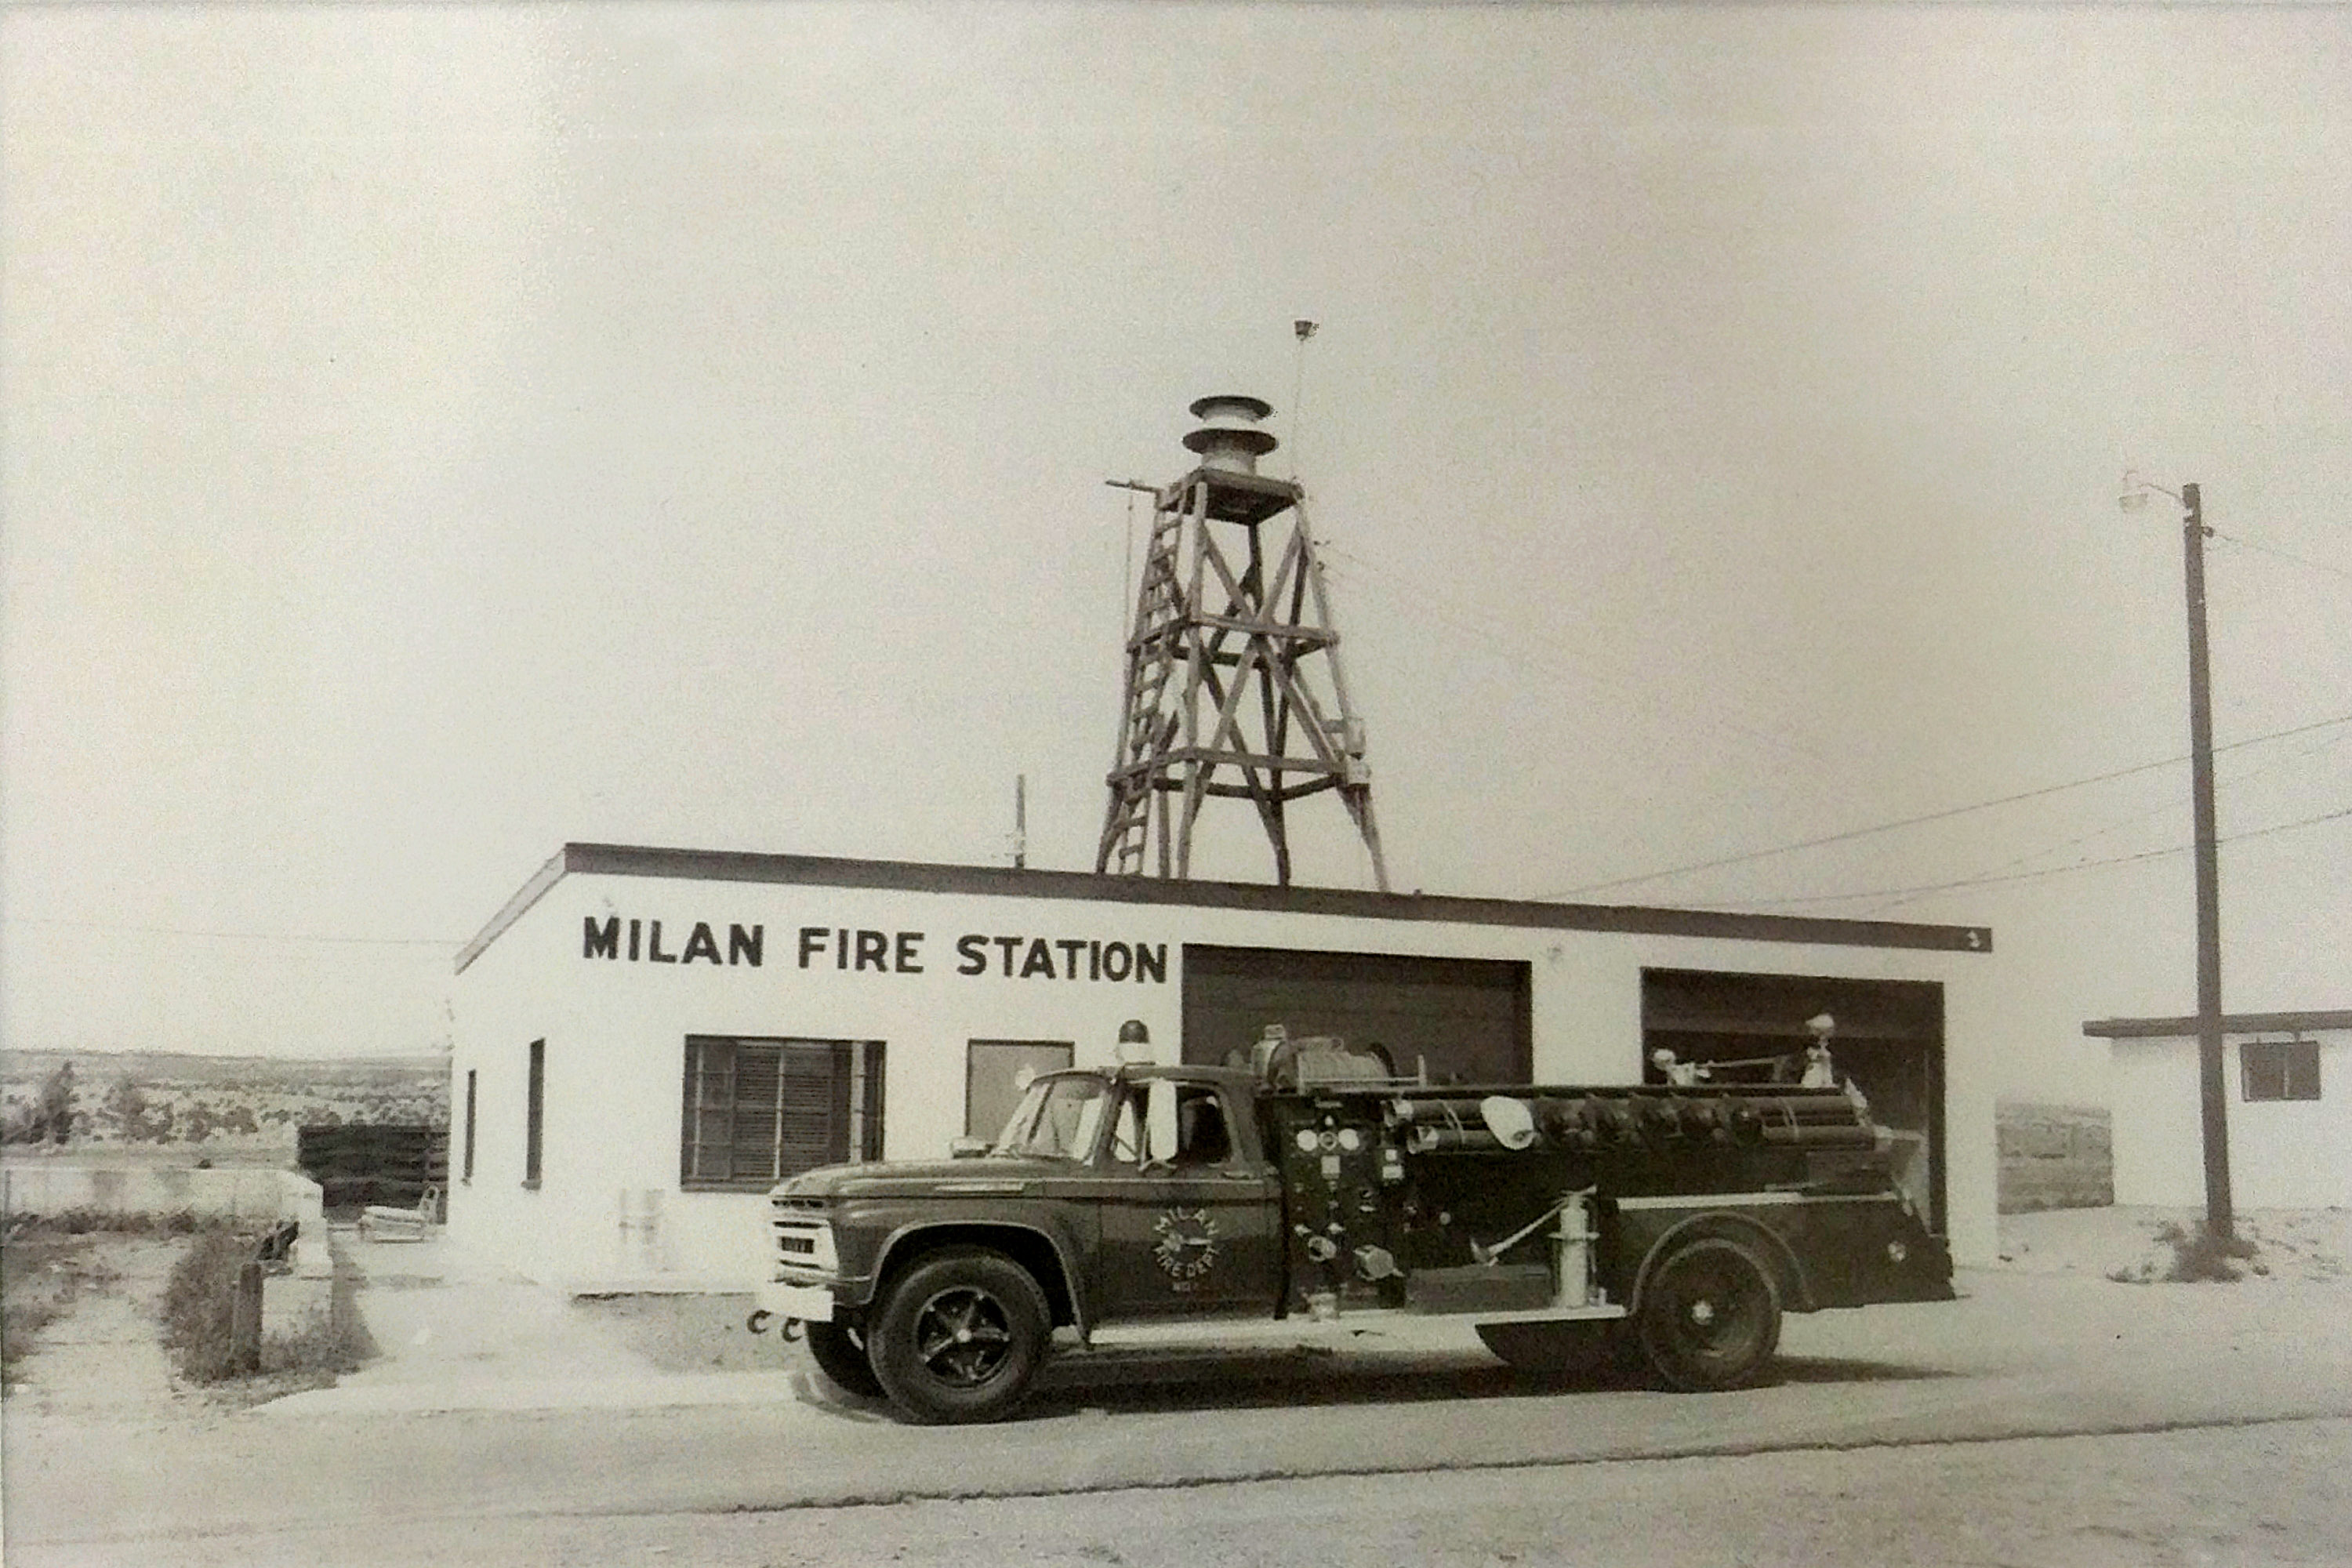 Milan Fire Station (Original Site) 1965